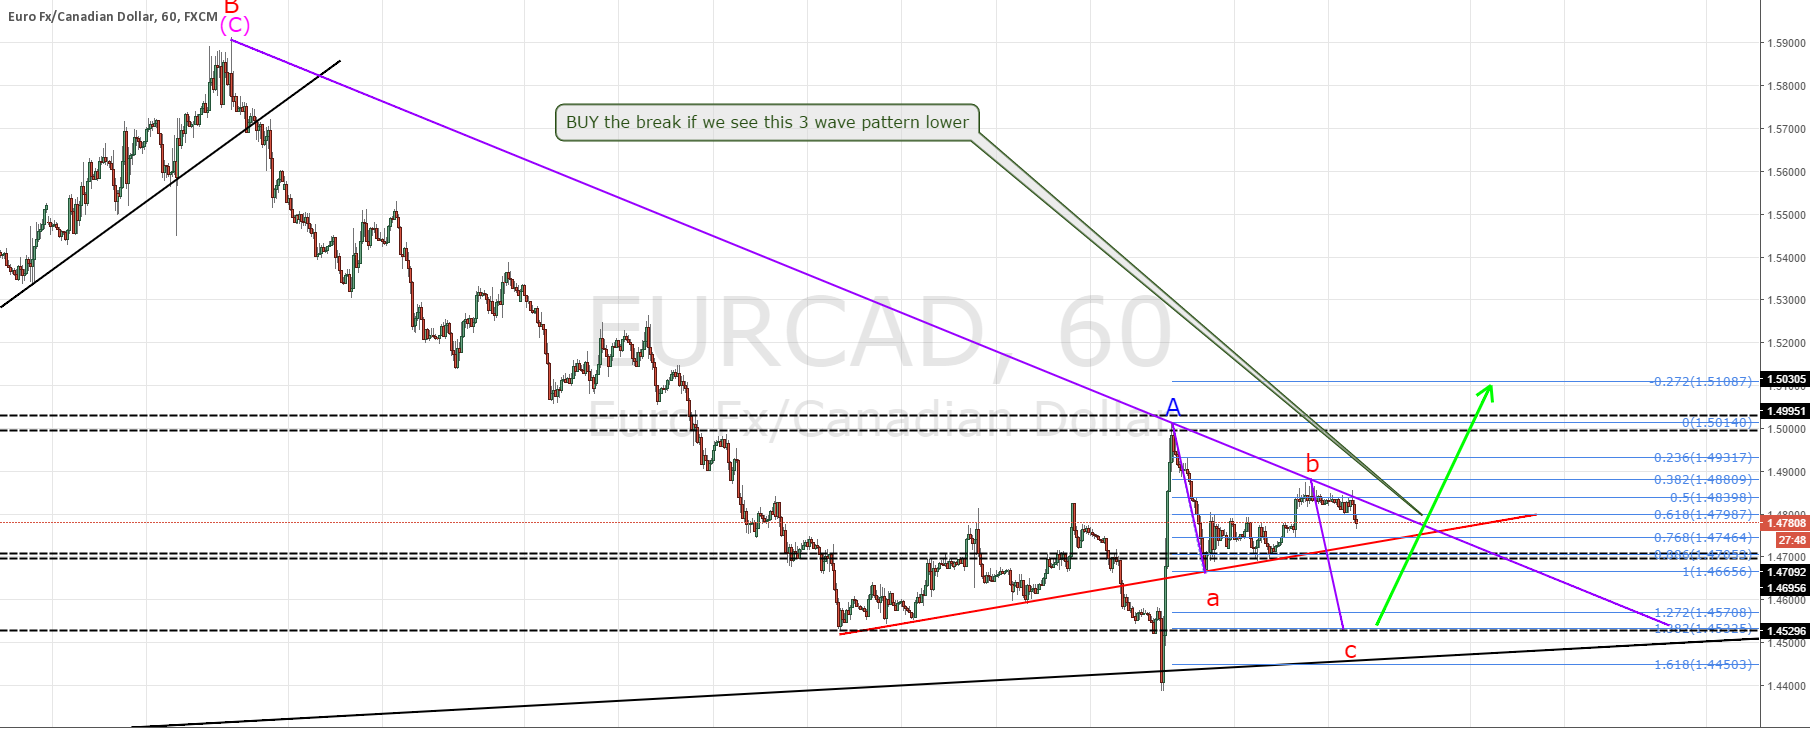 EURCAD update, short then long